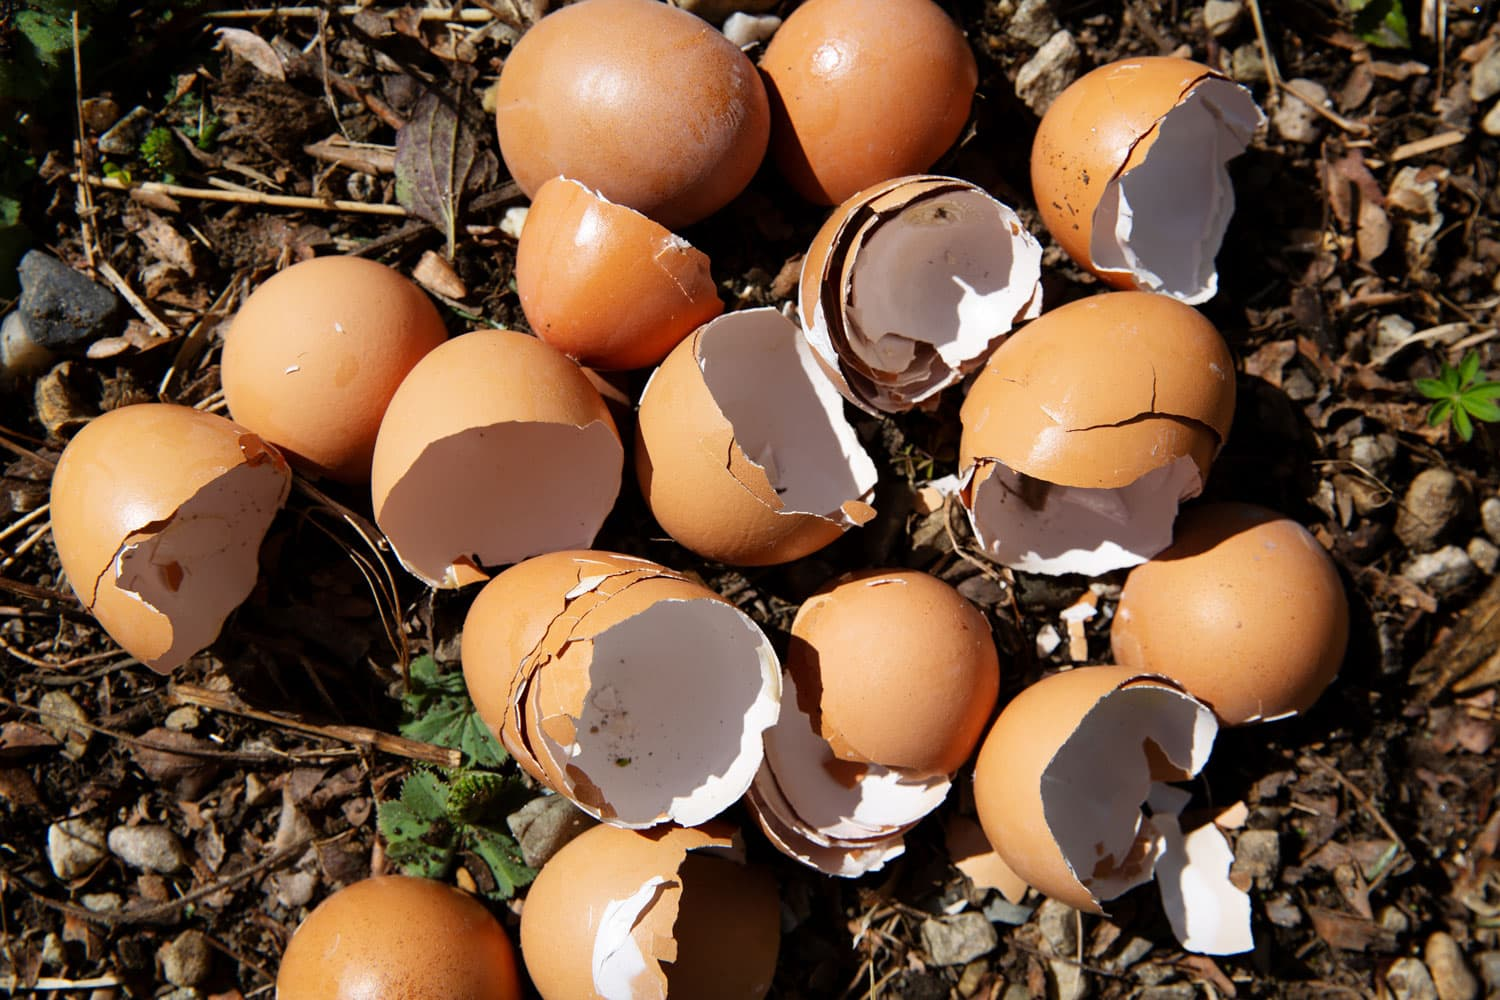 Eggshells lying on the ground in a garden.